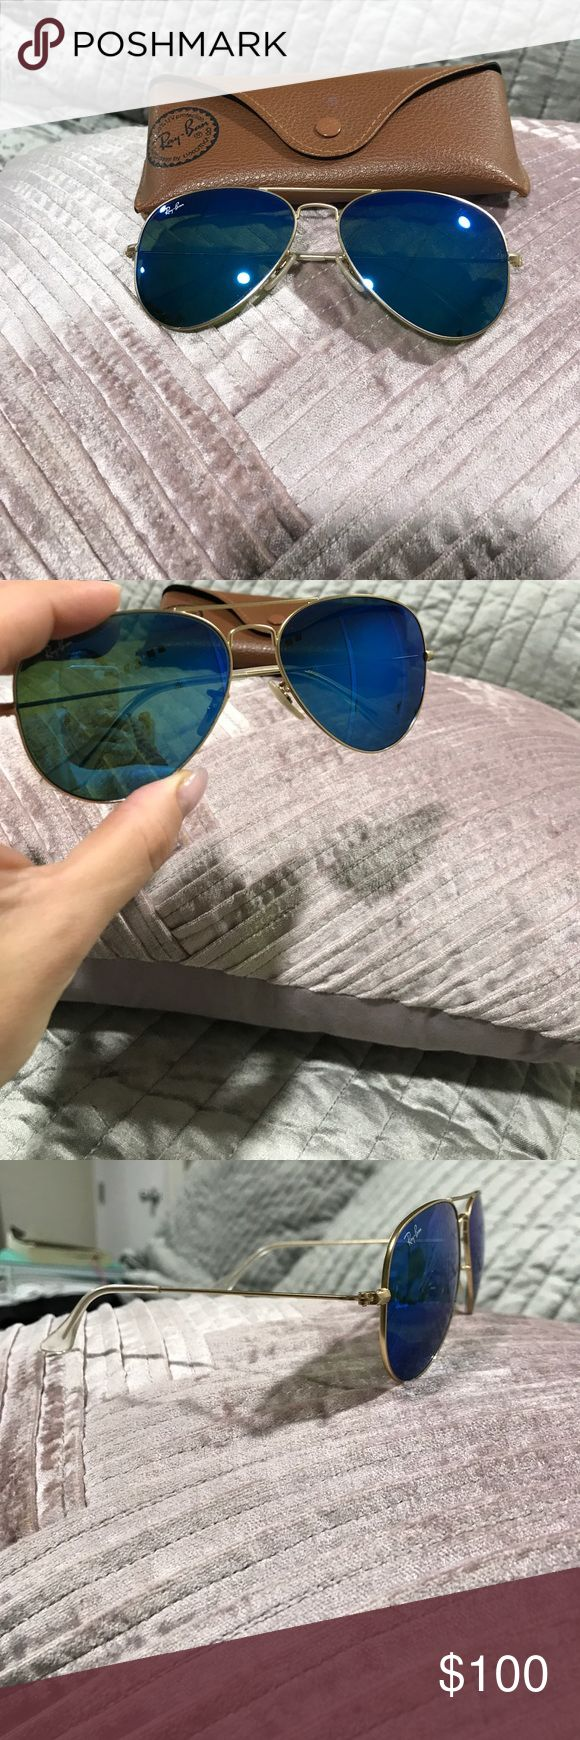 Ray ban aviators Blue mirror aviator Ray Ban sunglasses.  58mm Color: blue & gold. Comes with case. These are in great condition. They are not bent, nor are they scratched. 100% Authentic!! Comes with box, cards, price tag & receipt!!! Ray-Ban Accessories Sunglasses